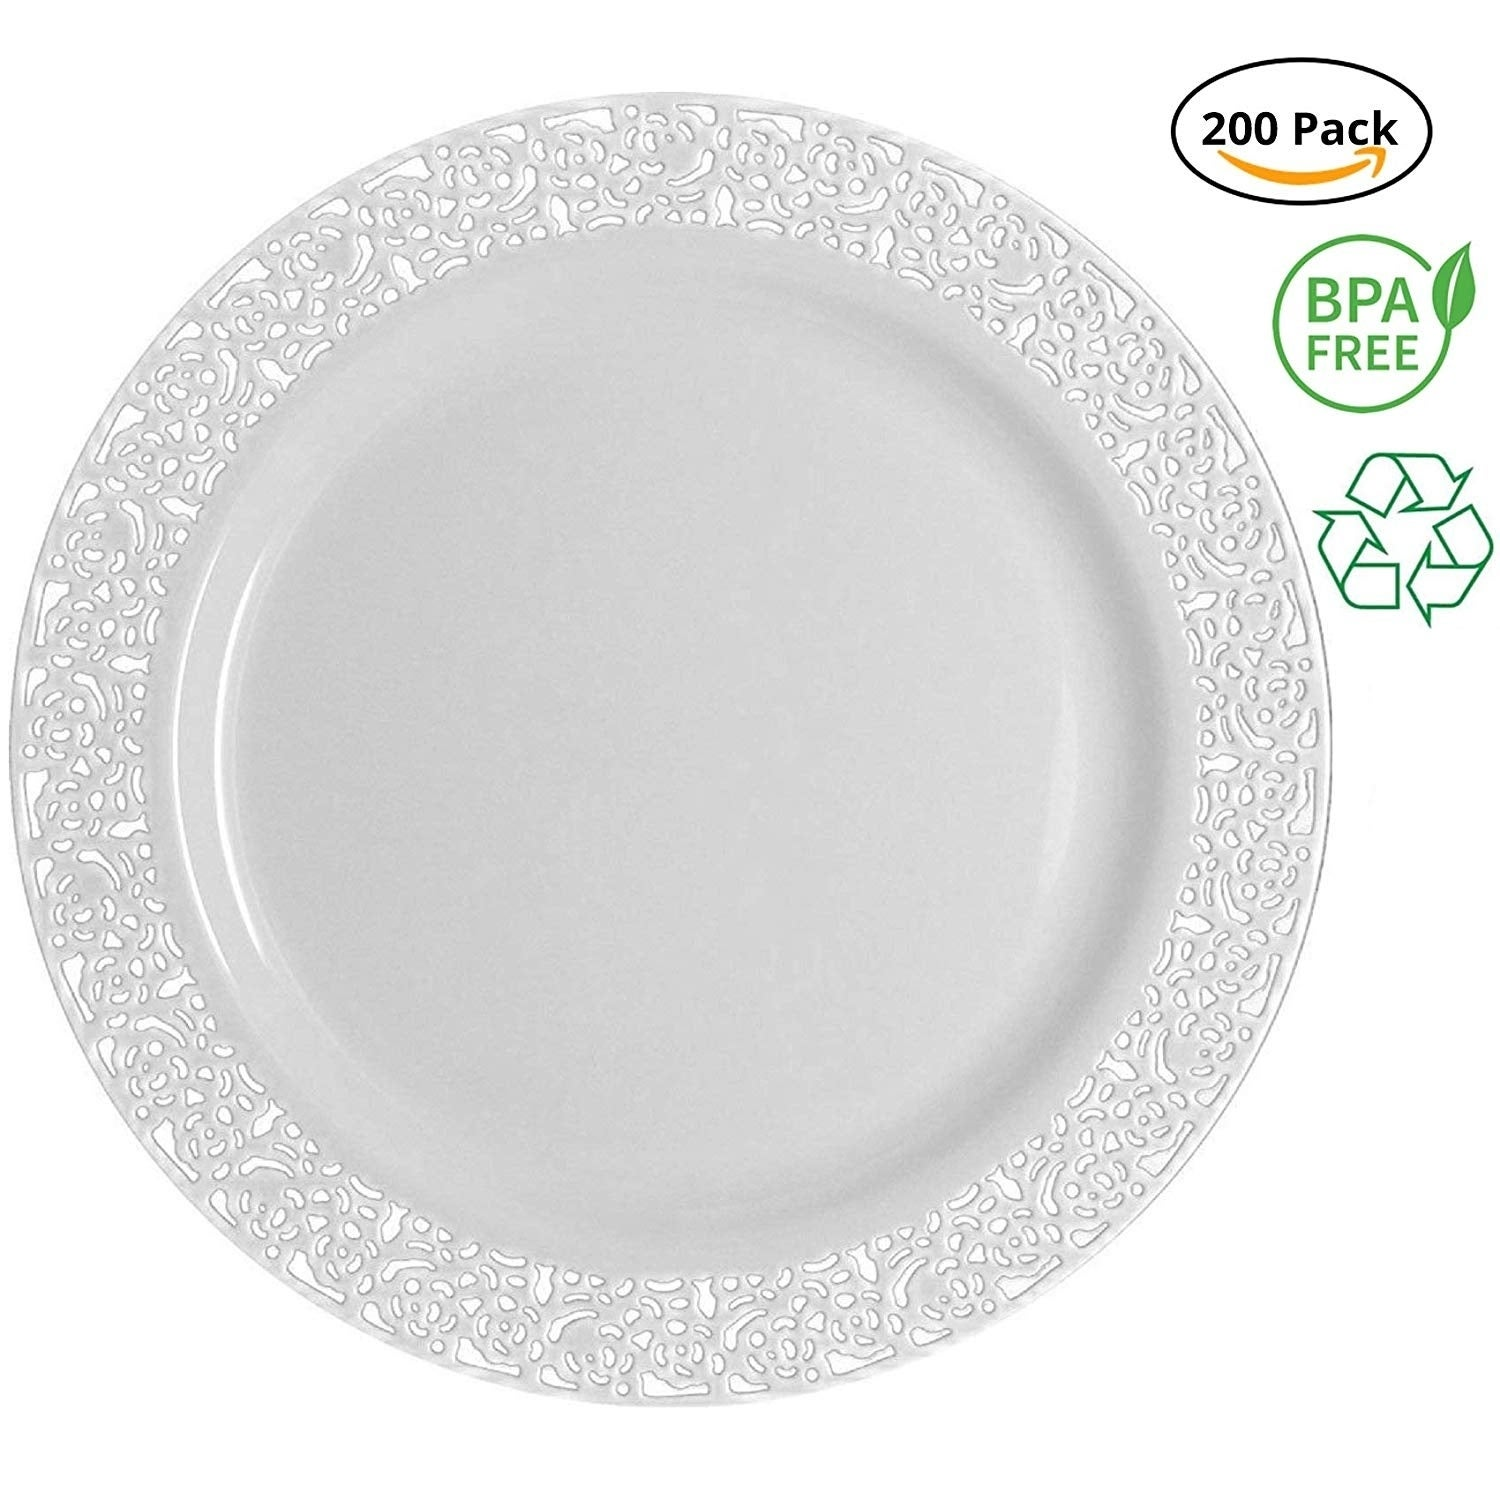 Shop party joy 200 piece royale white plastic plate set 200 dinner plates heavy duty premium plastic plates white free shipping today overstock